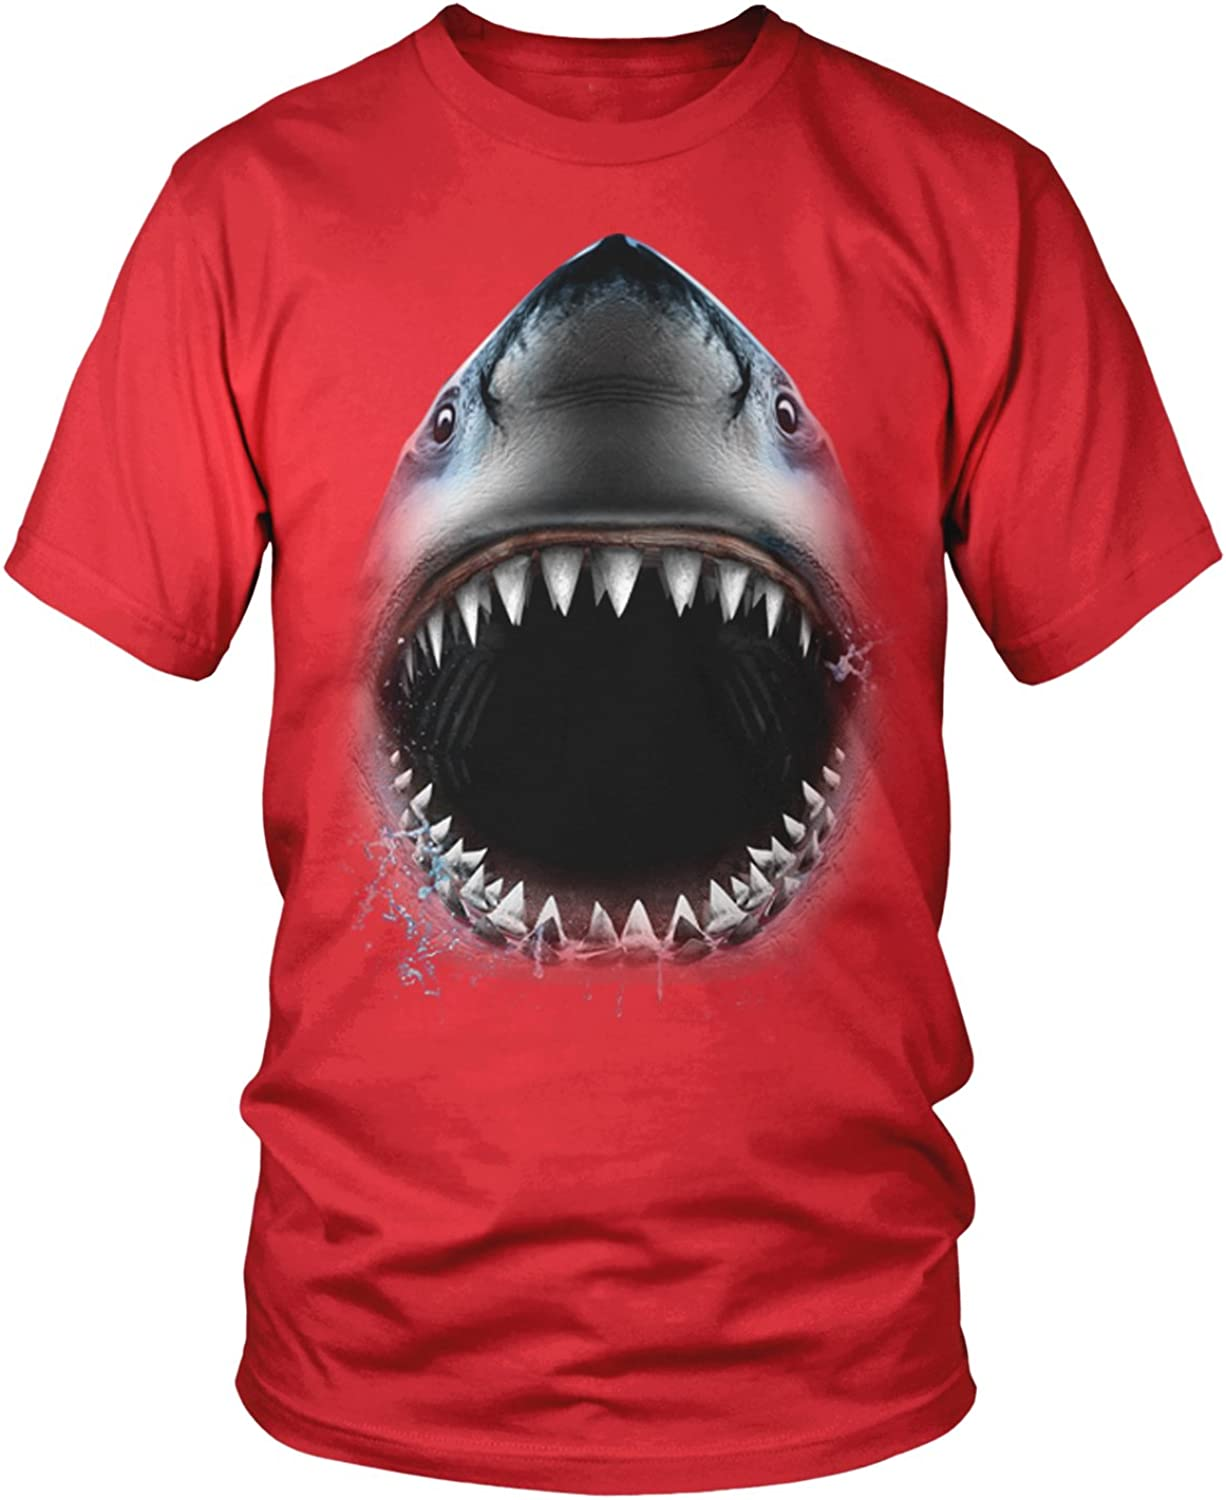 Amdesco Great White Shark Bite, Shark Face Jaw Men's T-Shirt